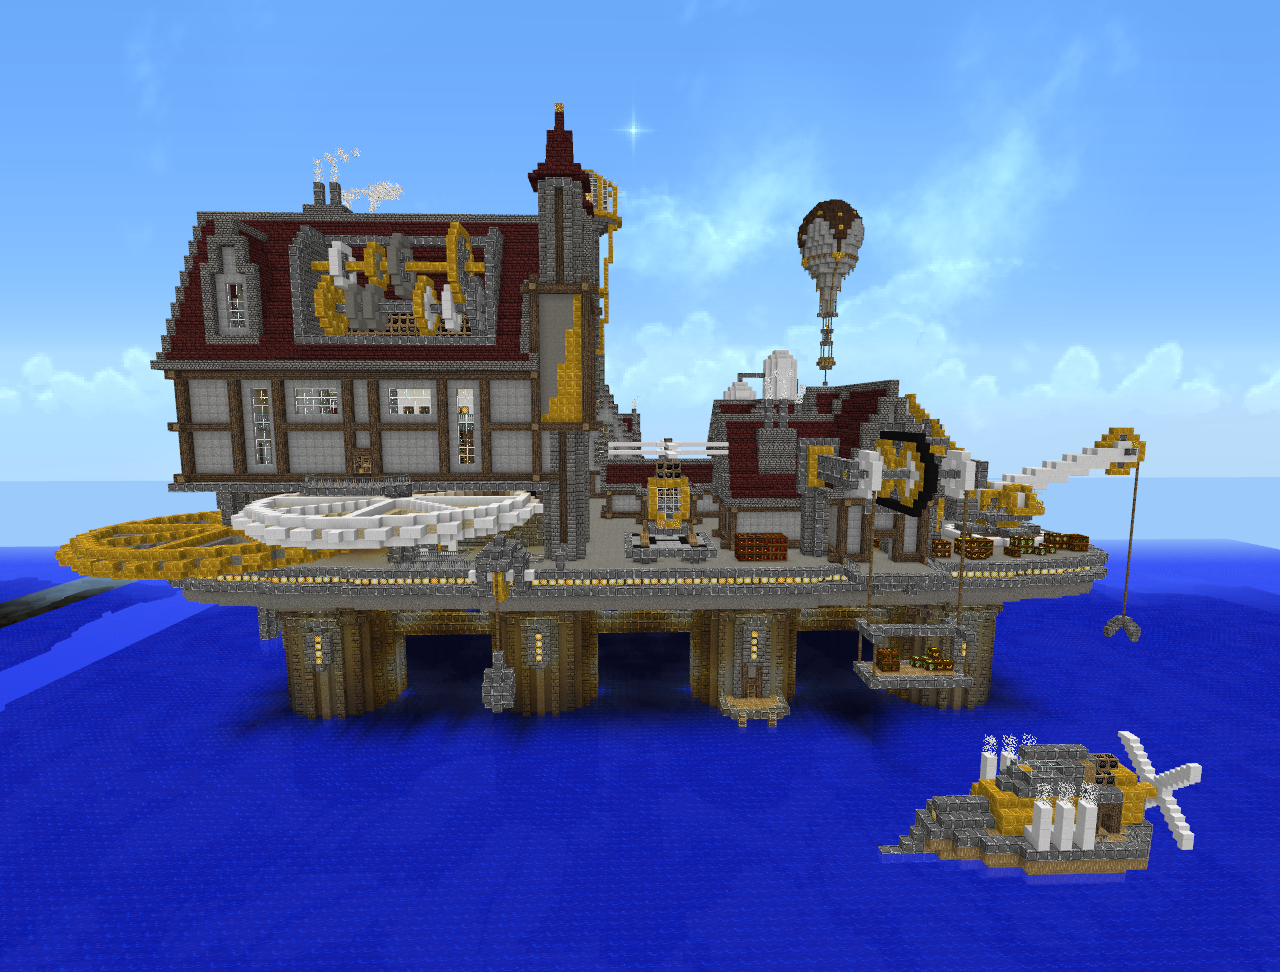 Cool Wallpaper Minecraft Steampunk - minecraft___steampunk_city_2_by_virenth-d6fz933  Pic_455482.png